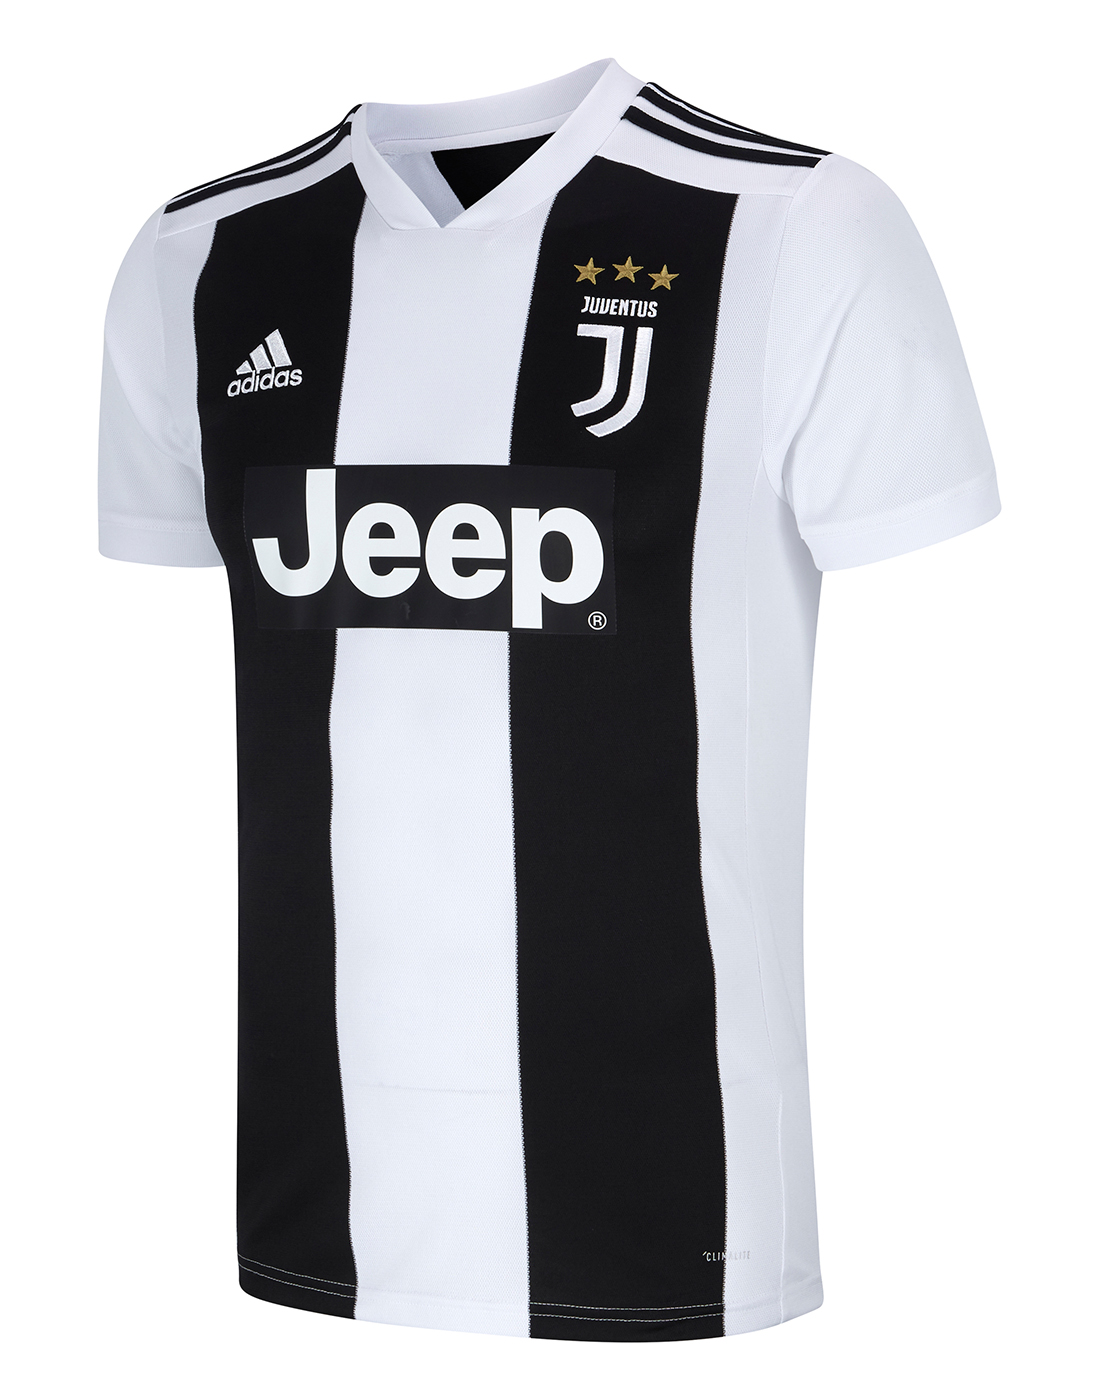 e39ec0ca2 ... Adults Juventus 18 19 Home Jersey ...